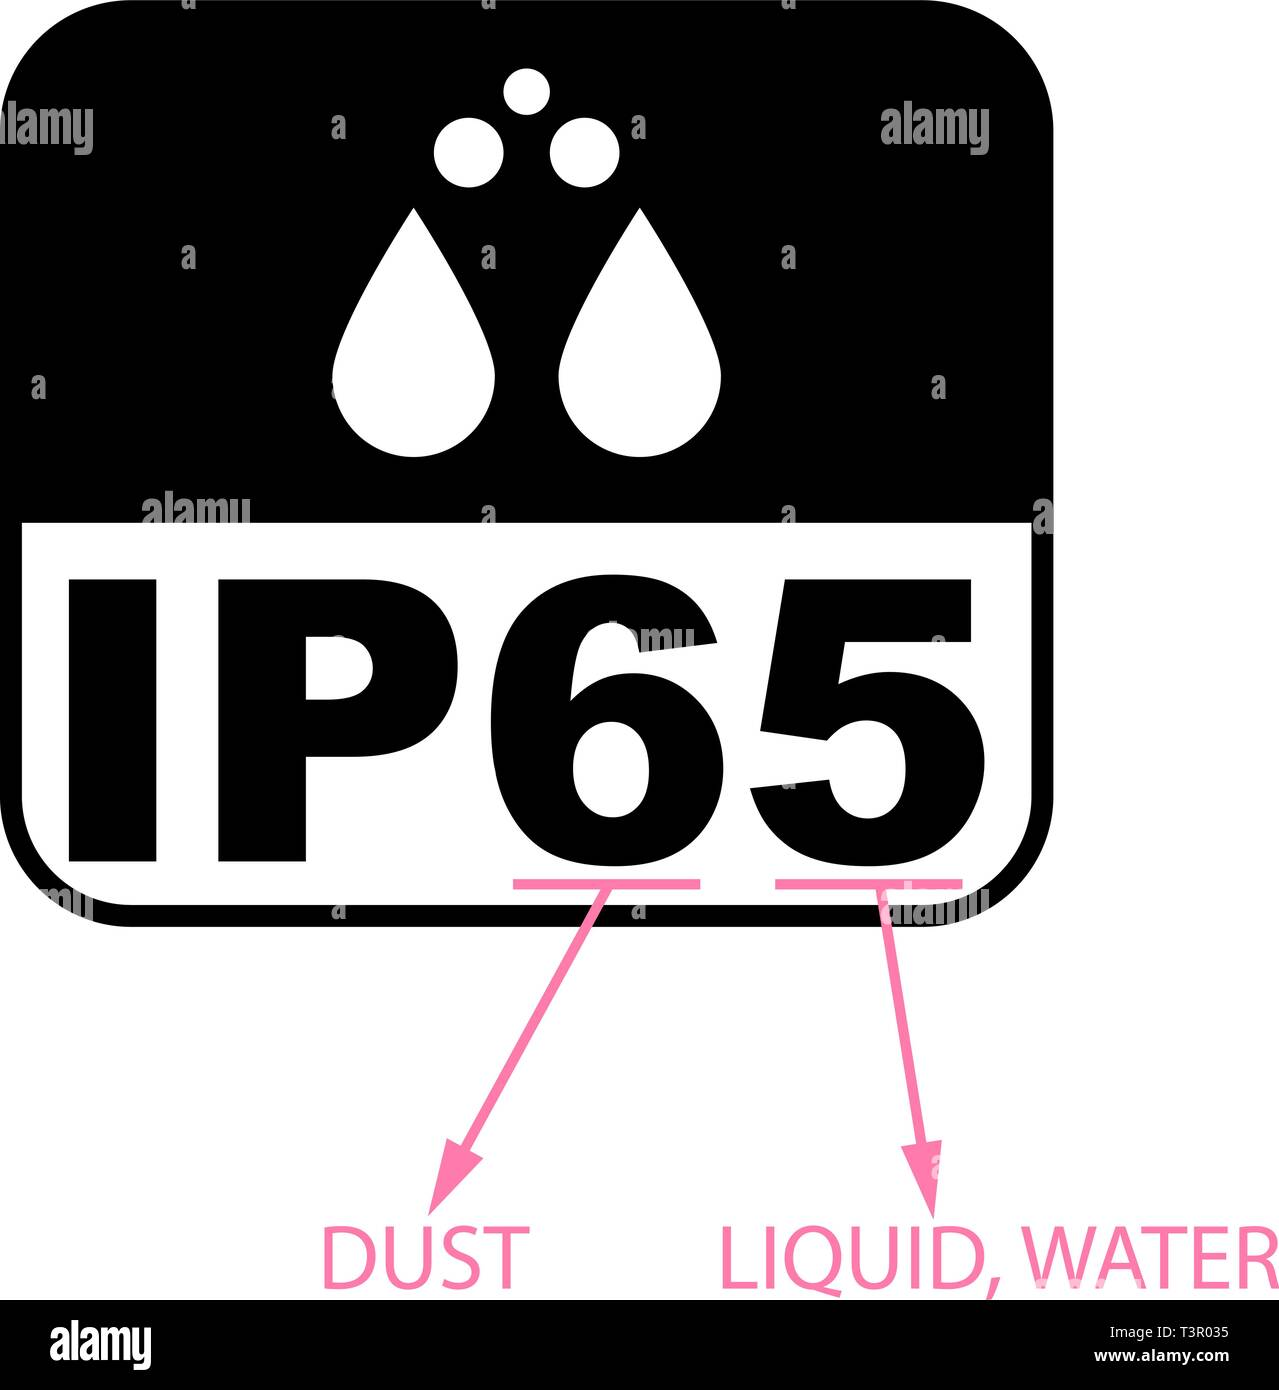 IP65 protection certificate standard icon. Water and dust or solids resistant protected symbol. Vector illustration. - Stock Image